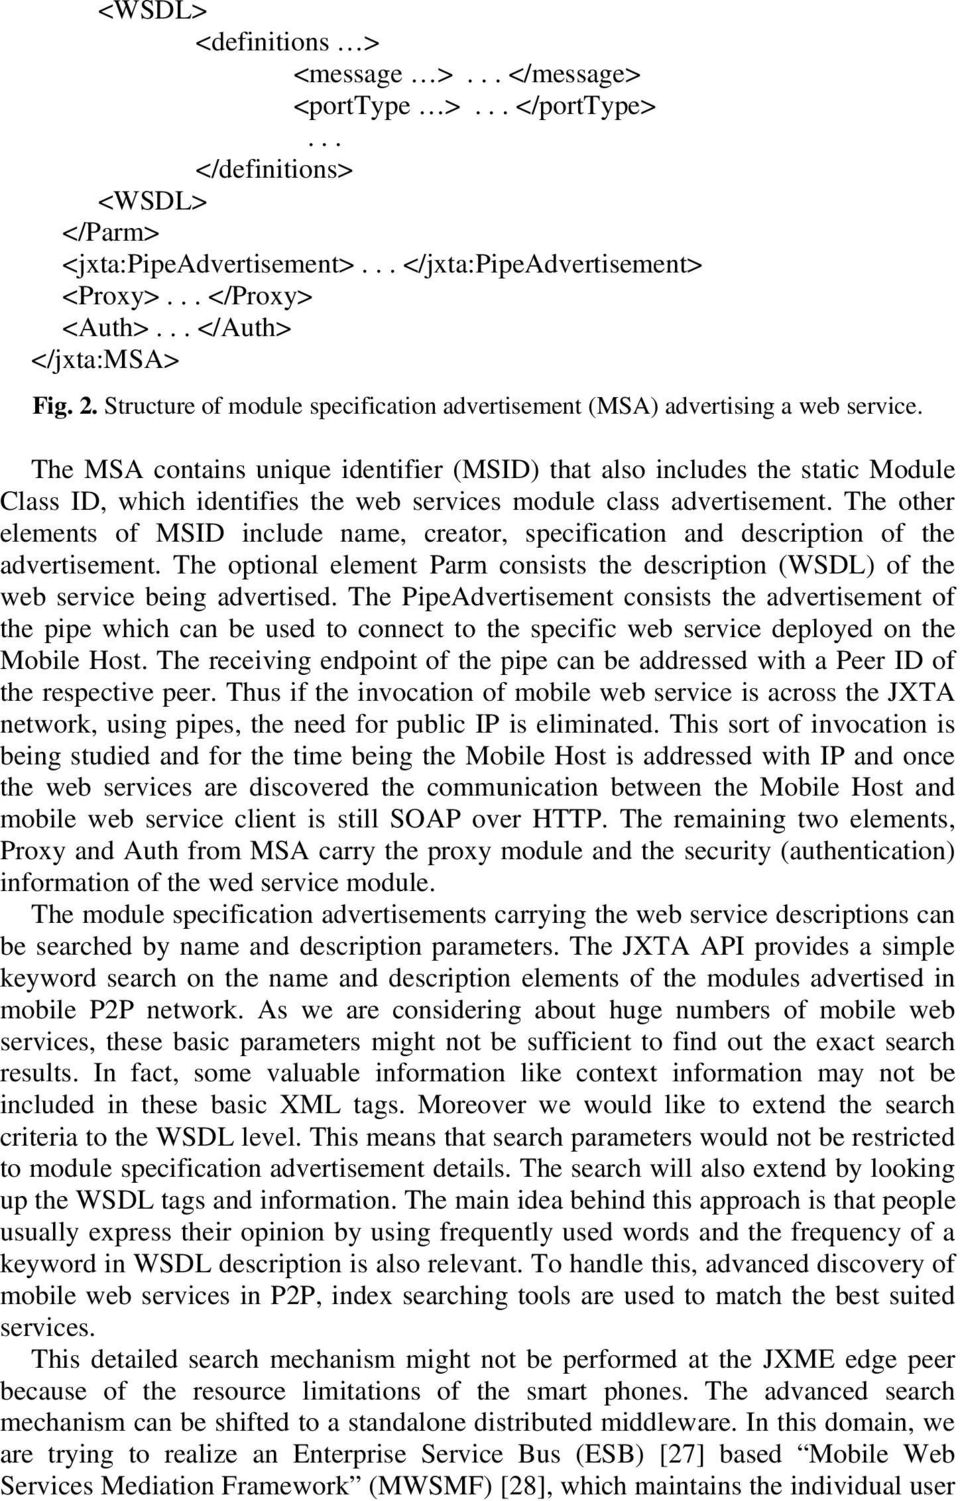 The MSA contains unique identifier (MSID) that also includes the static Module Class ID, which identifies the web services module class advertisement.